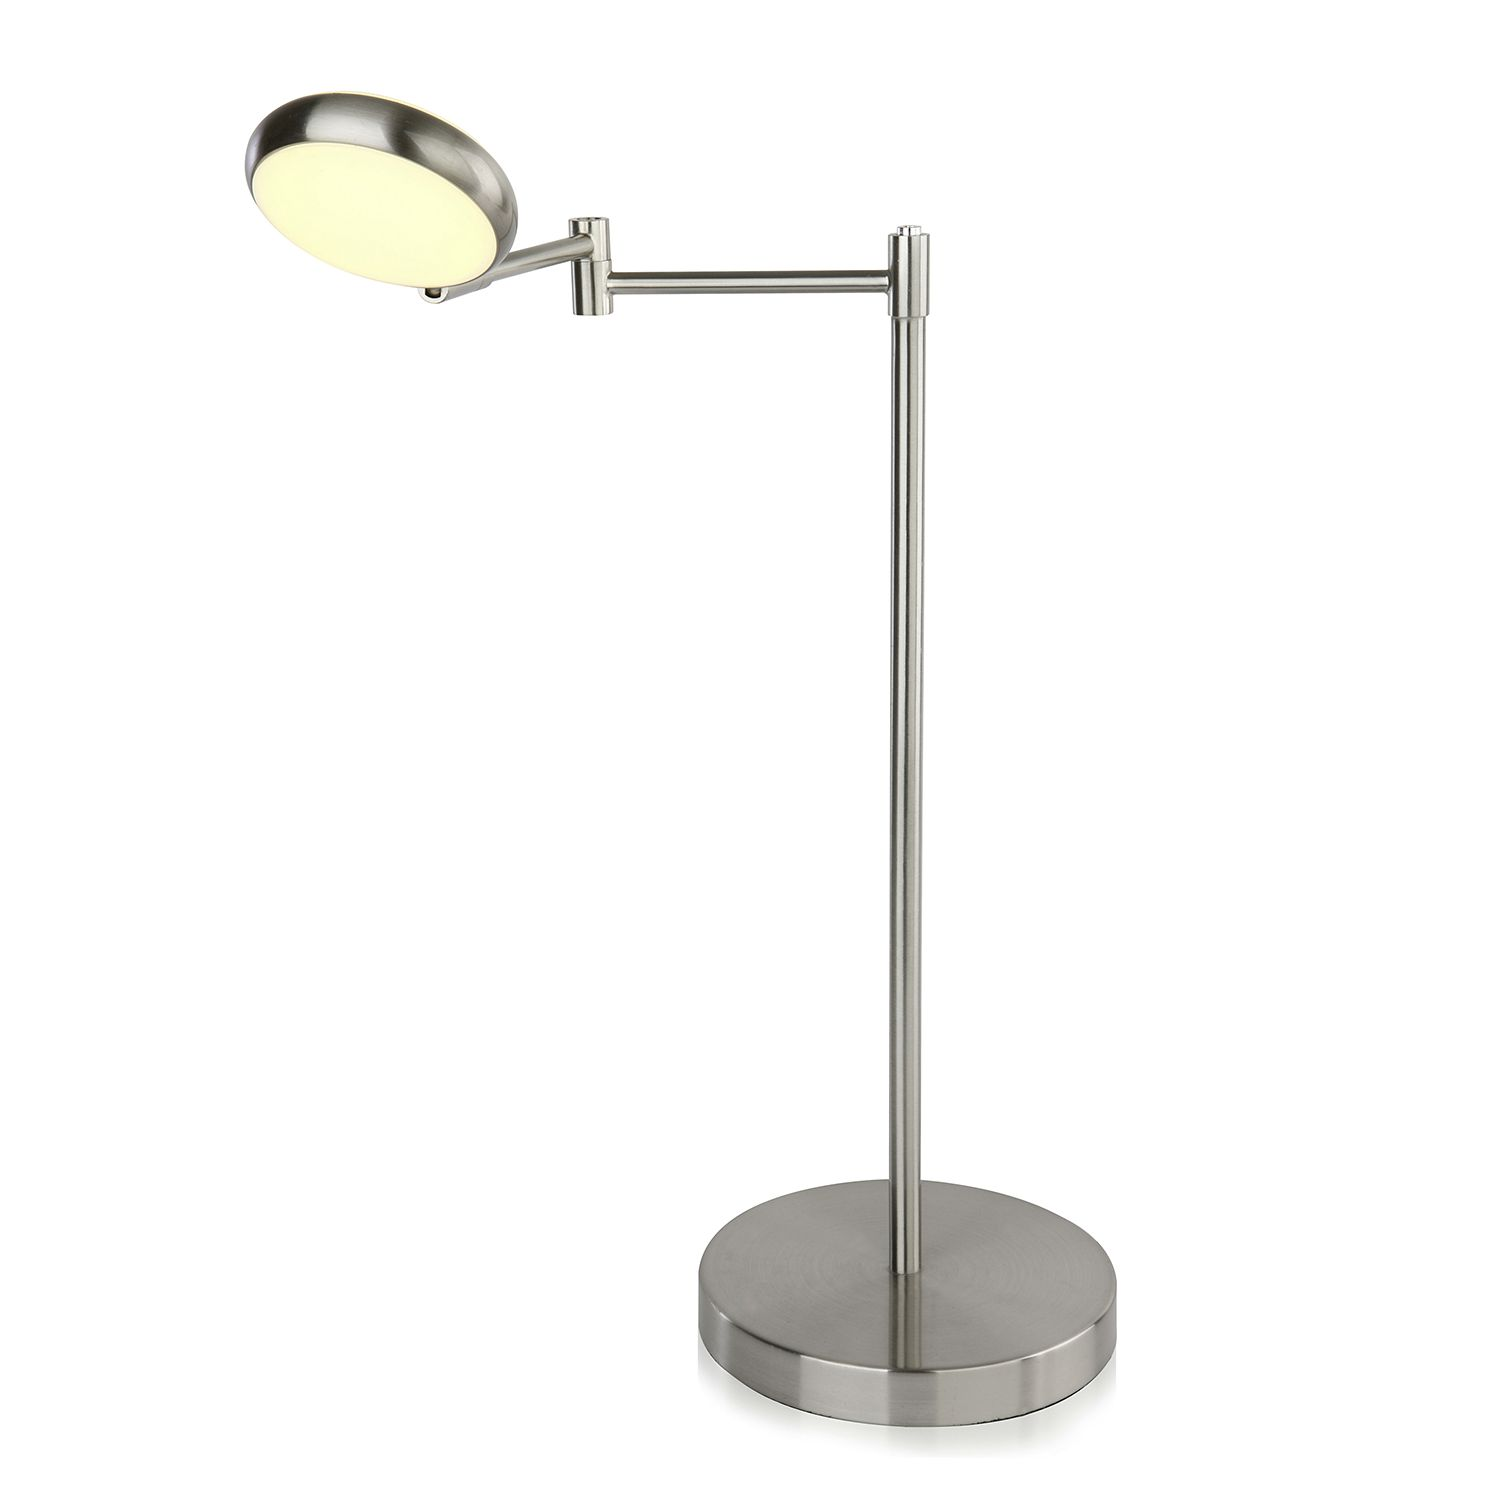 EEK A+, Lampe de table LED Double Shine I - Matière synthétique / Fer - 1 ampoule, Brilliant Living